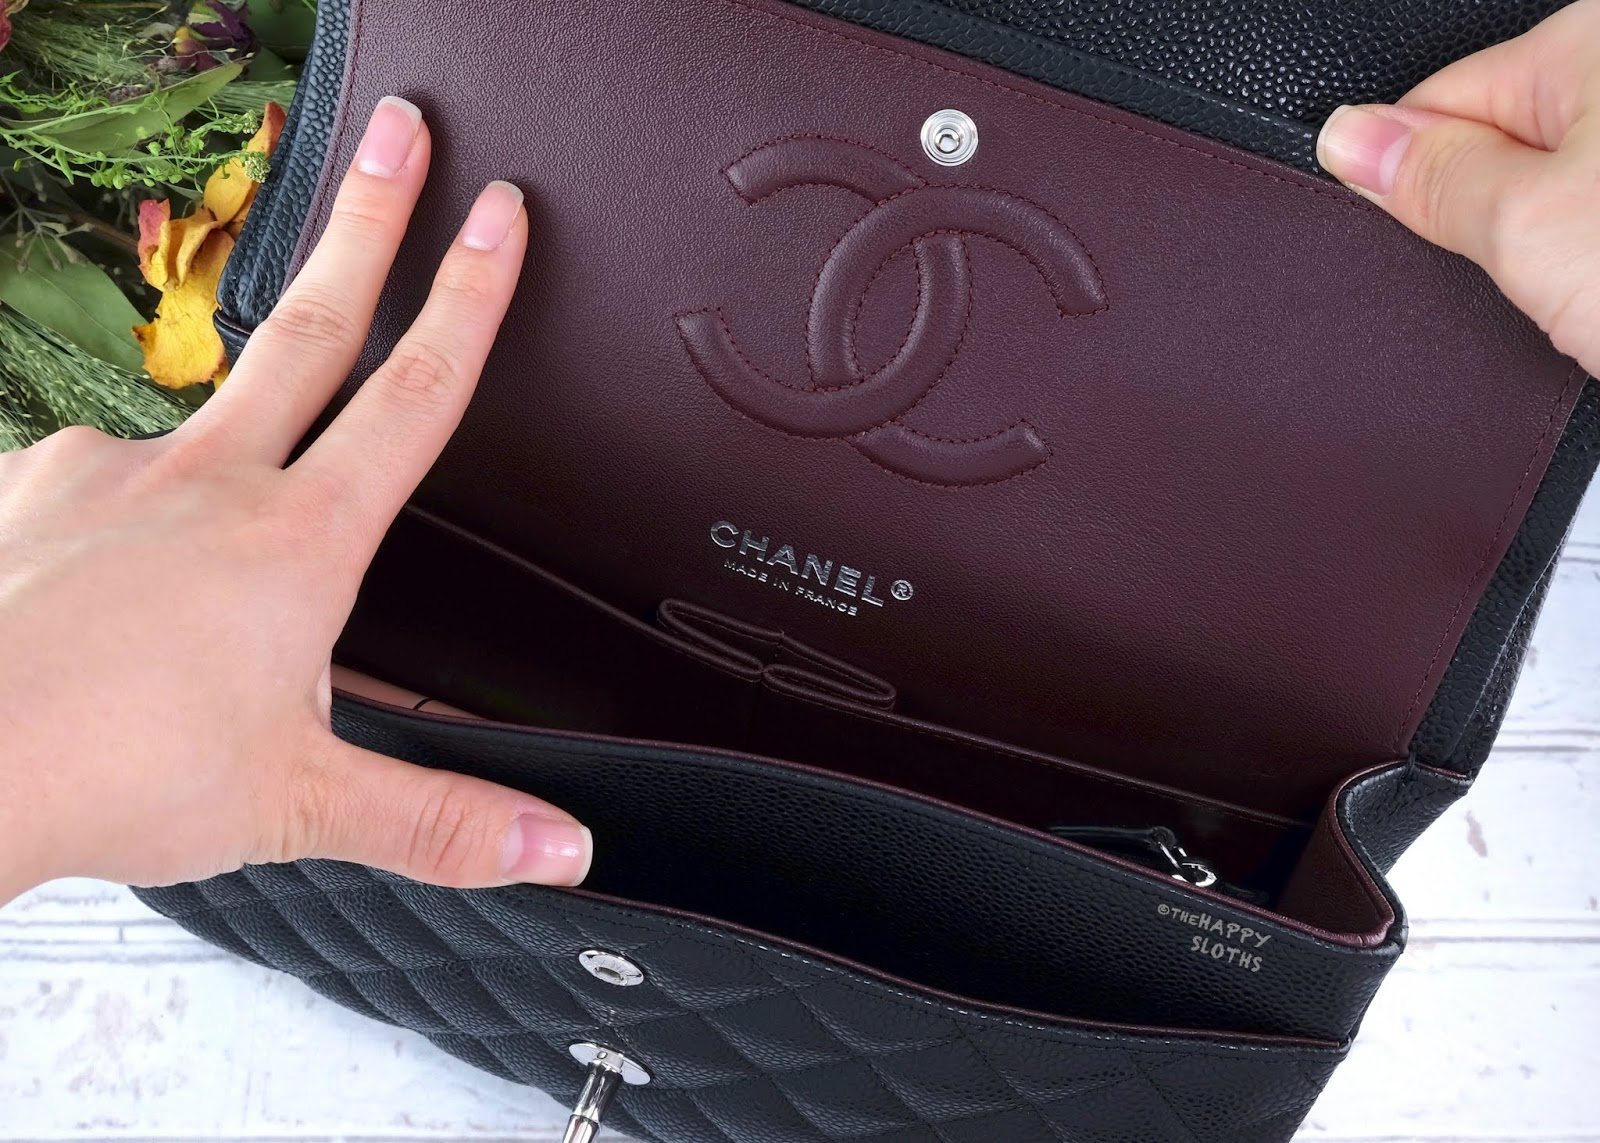 Chanel | Medium Classic Flap Handbag in Black Caviar Leather with Silver Hardware | Inside: Review